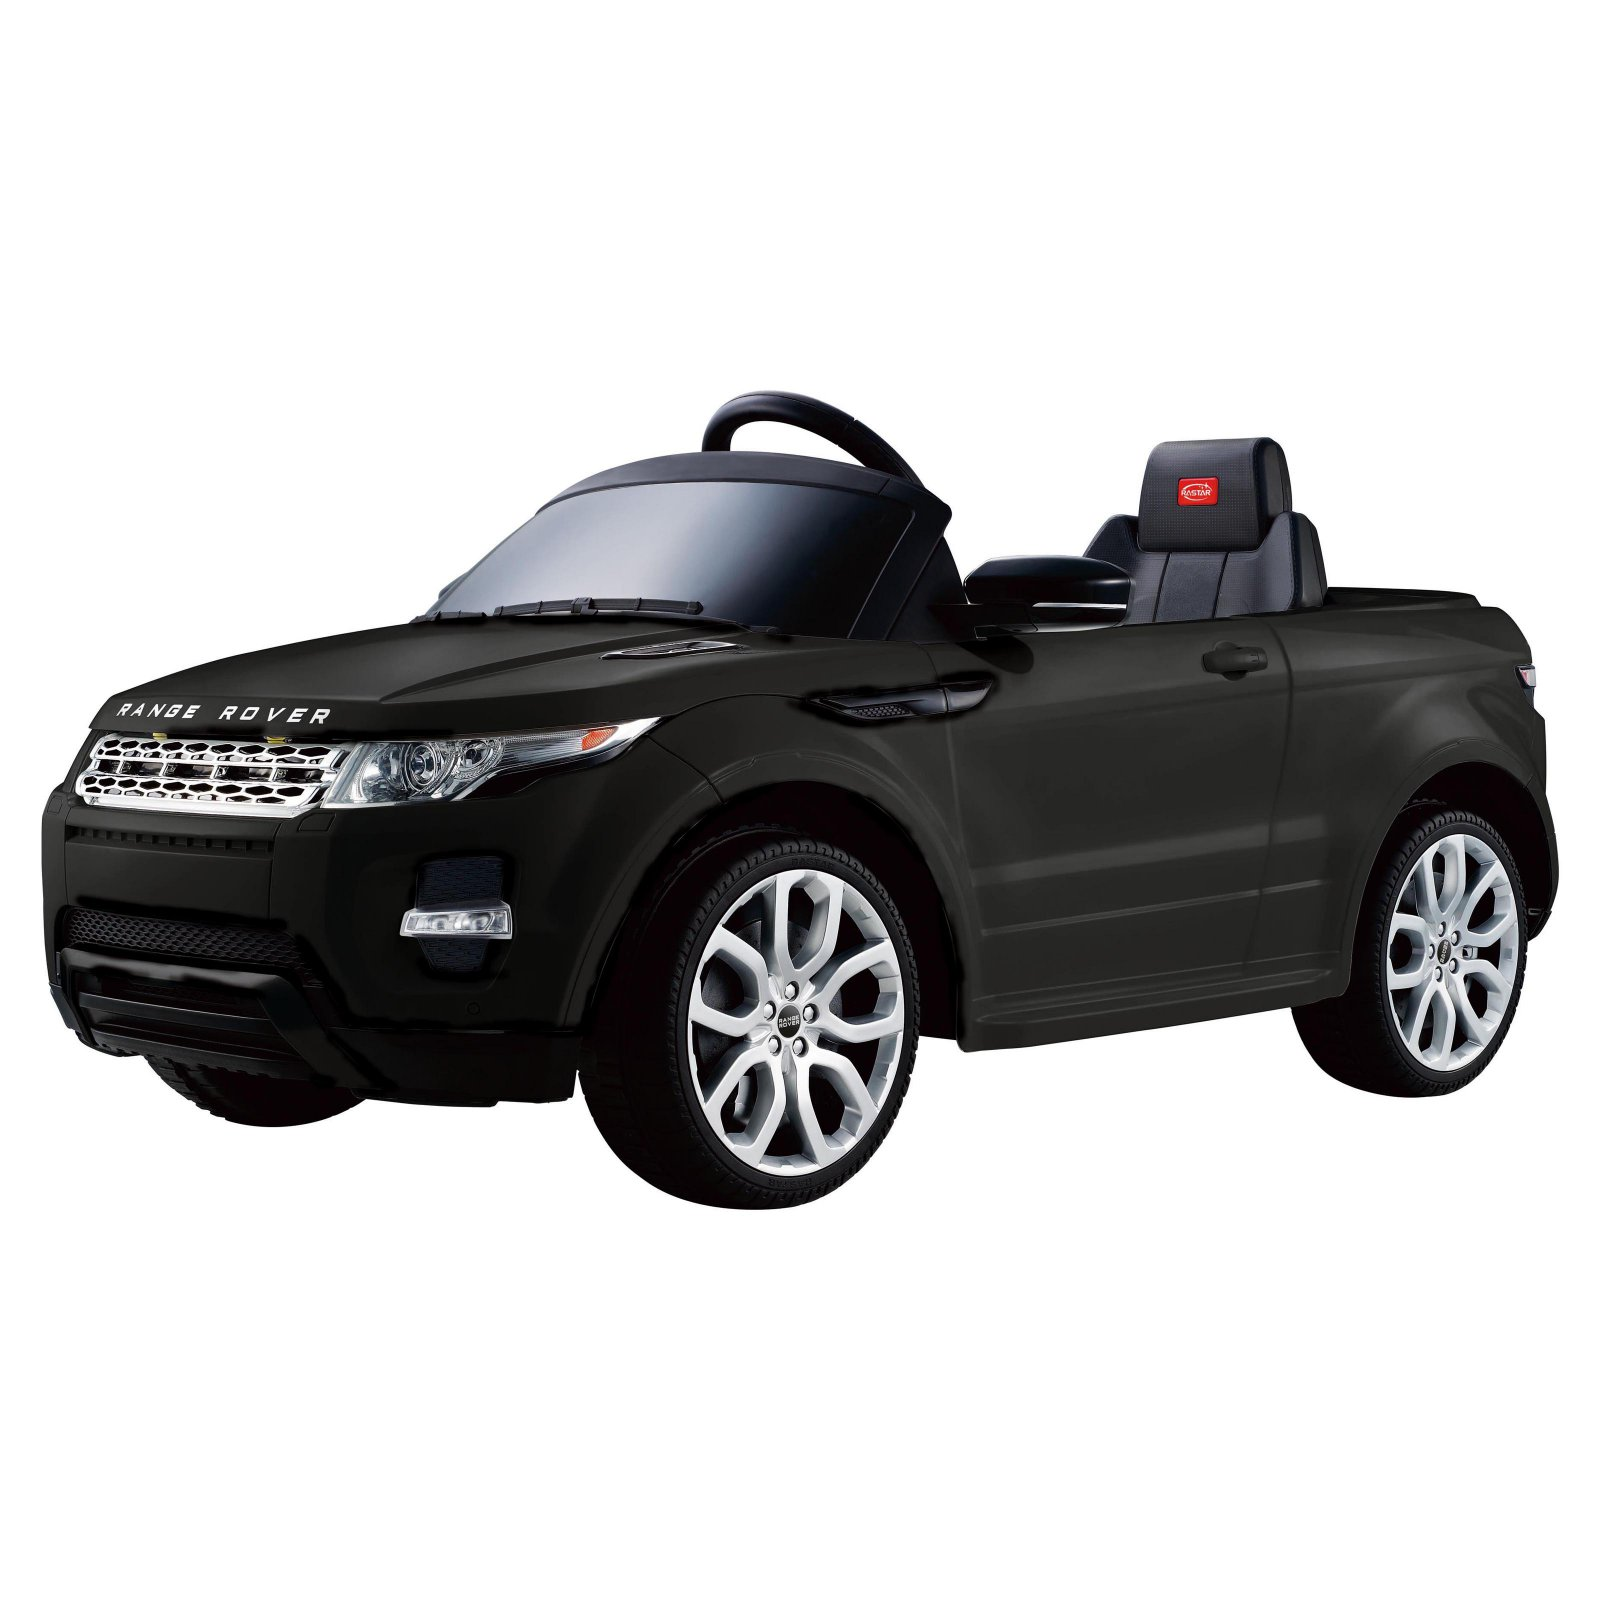 Range Rover Evoque 12V Ride-On, Black